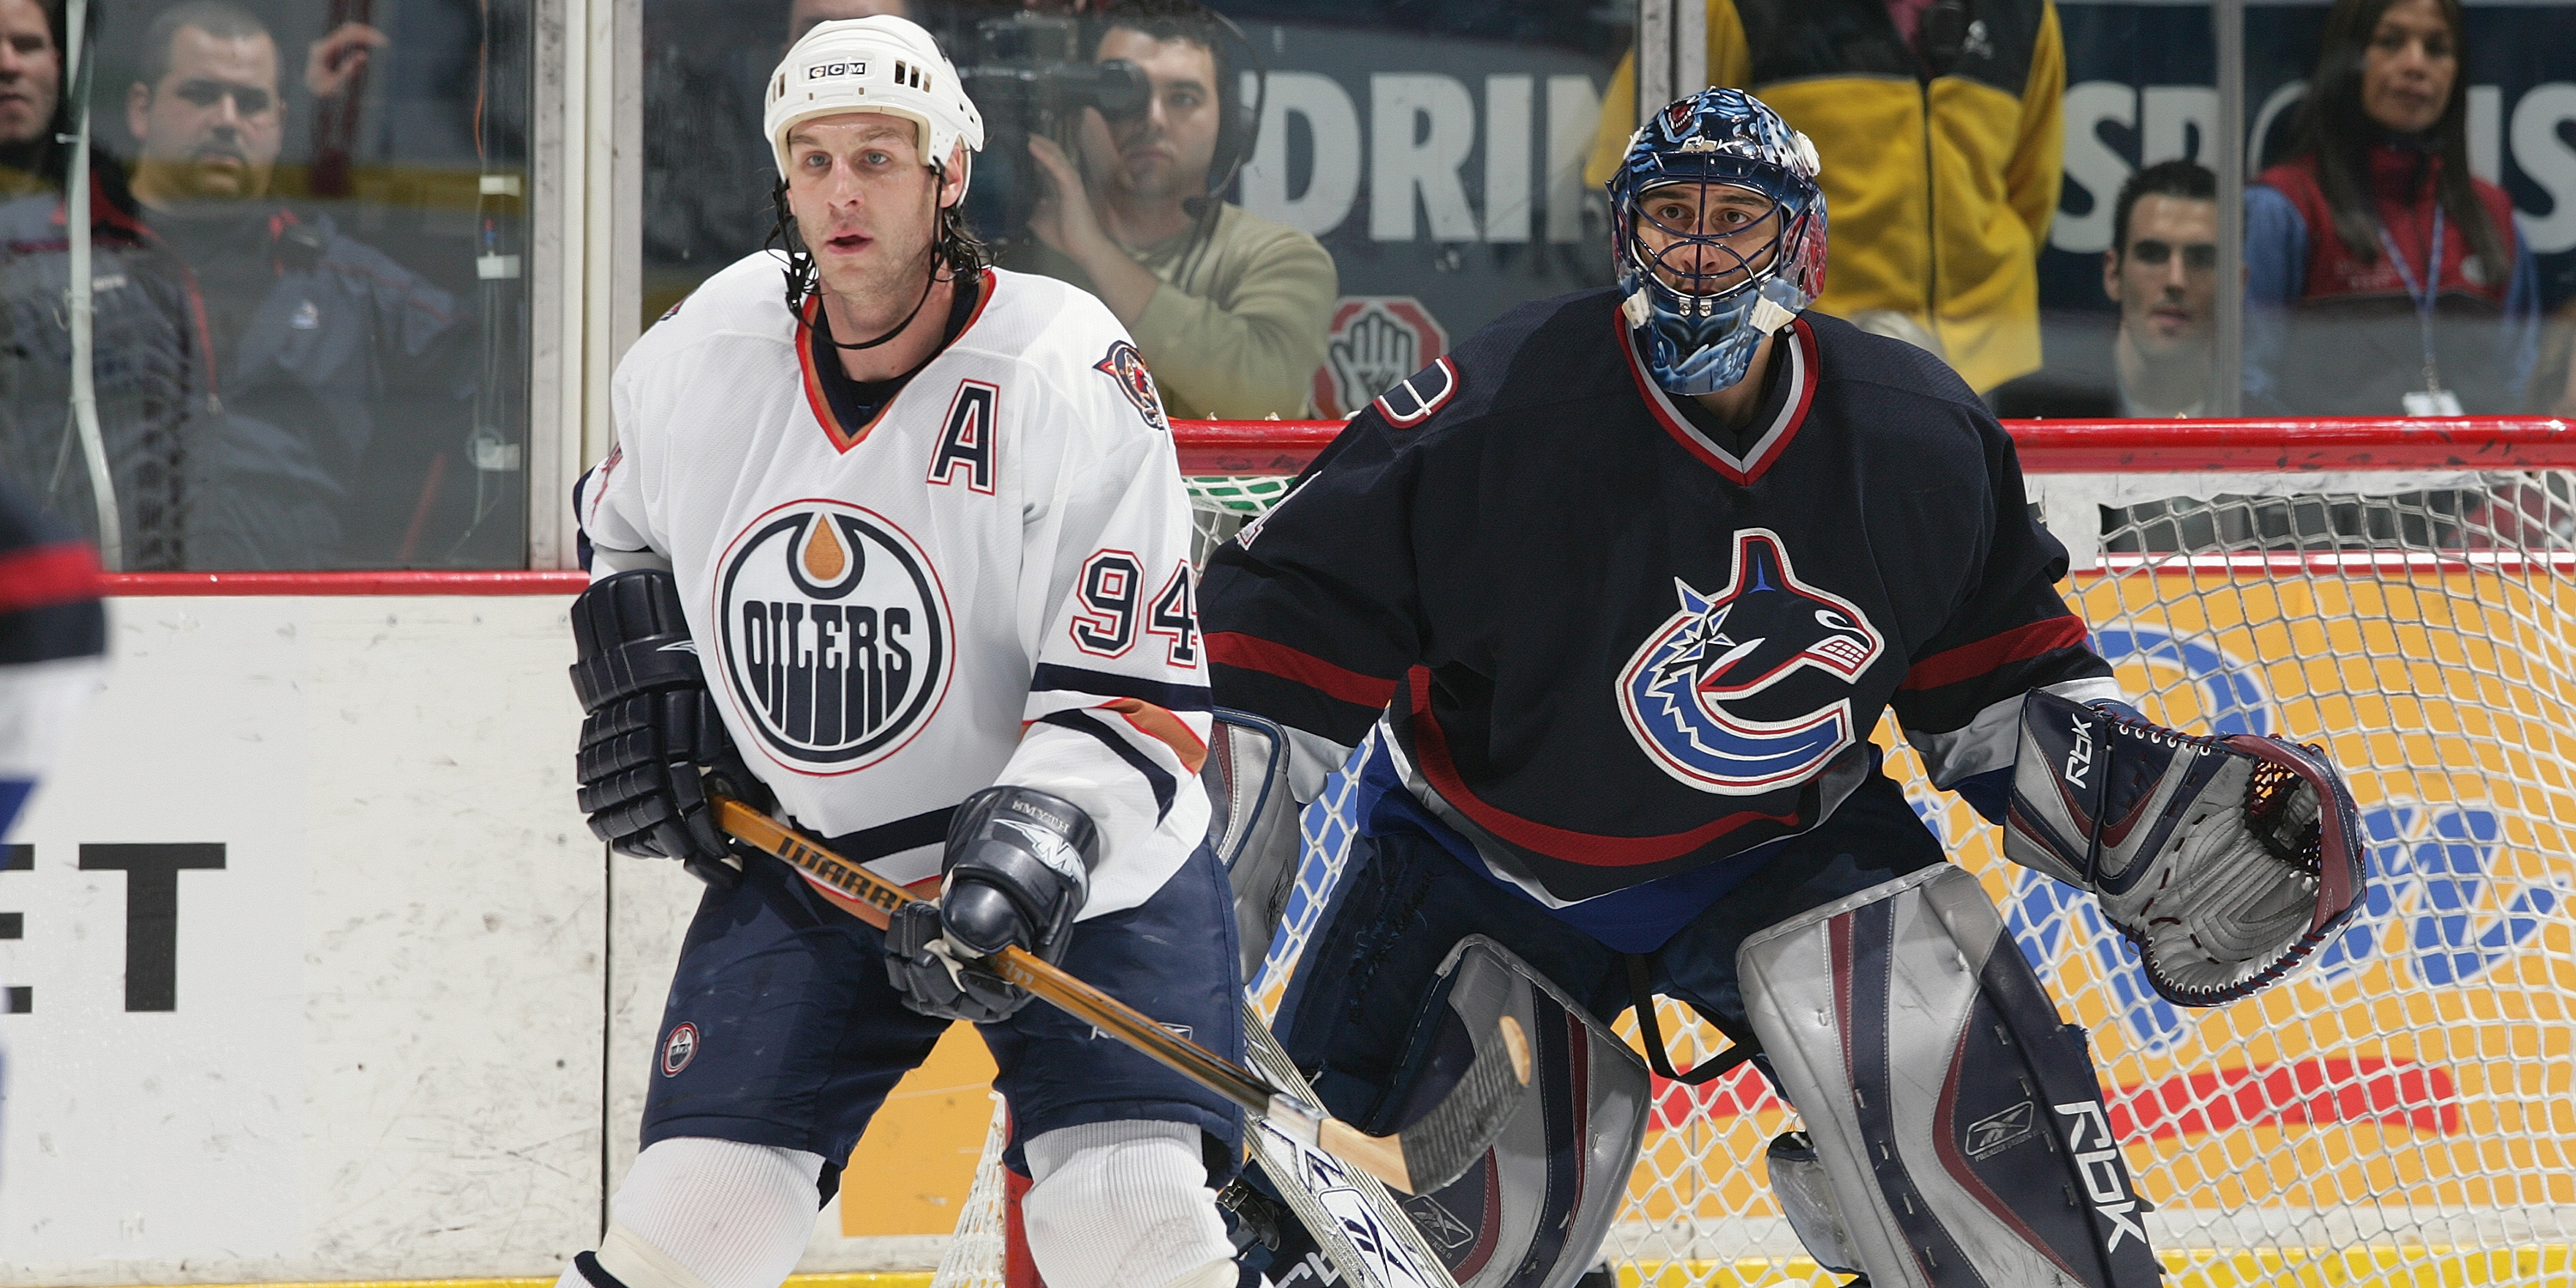 d2d5e86c0 Nilsson played 199 games for the Oilers from 2007-2010. He scored 31 goals  and added 67 assists. Ryan O Marra played 31 games for the Oilers. Edmonton  used ...